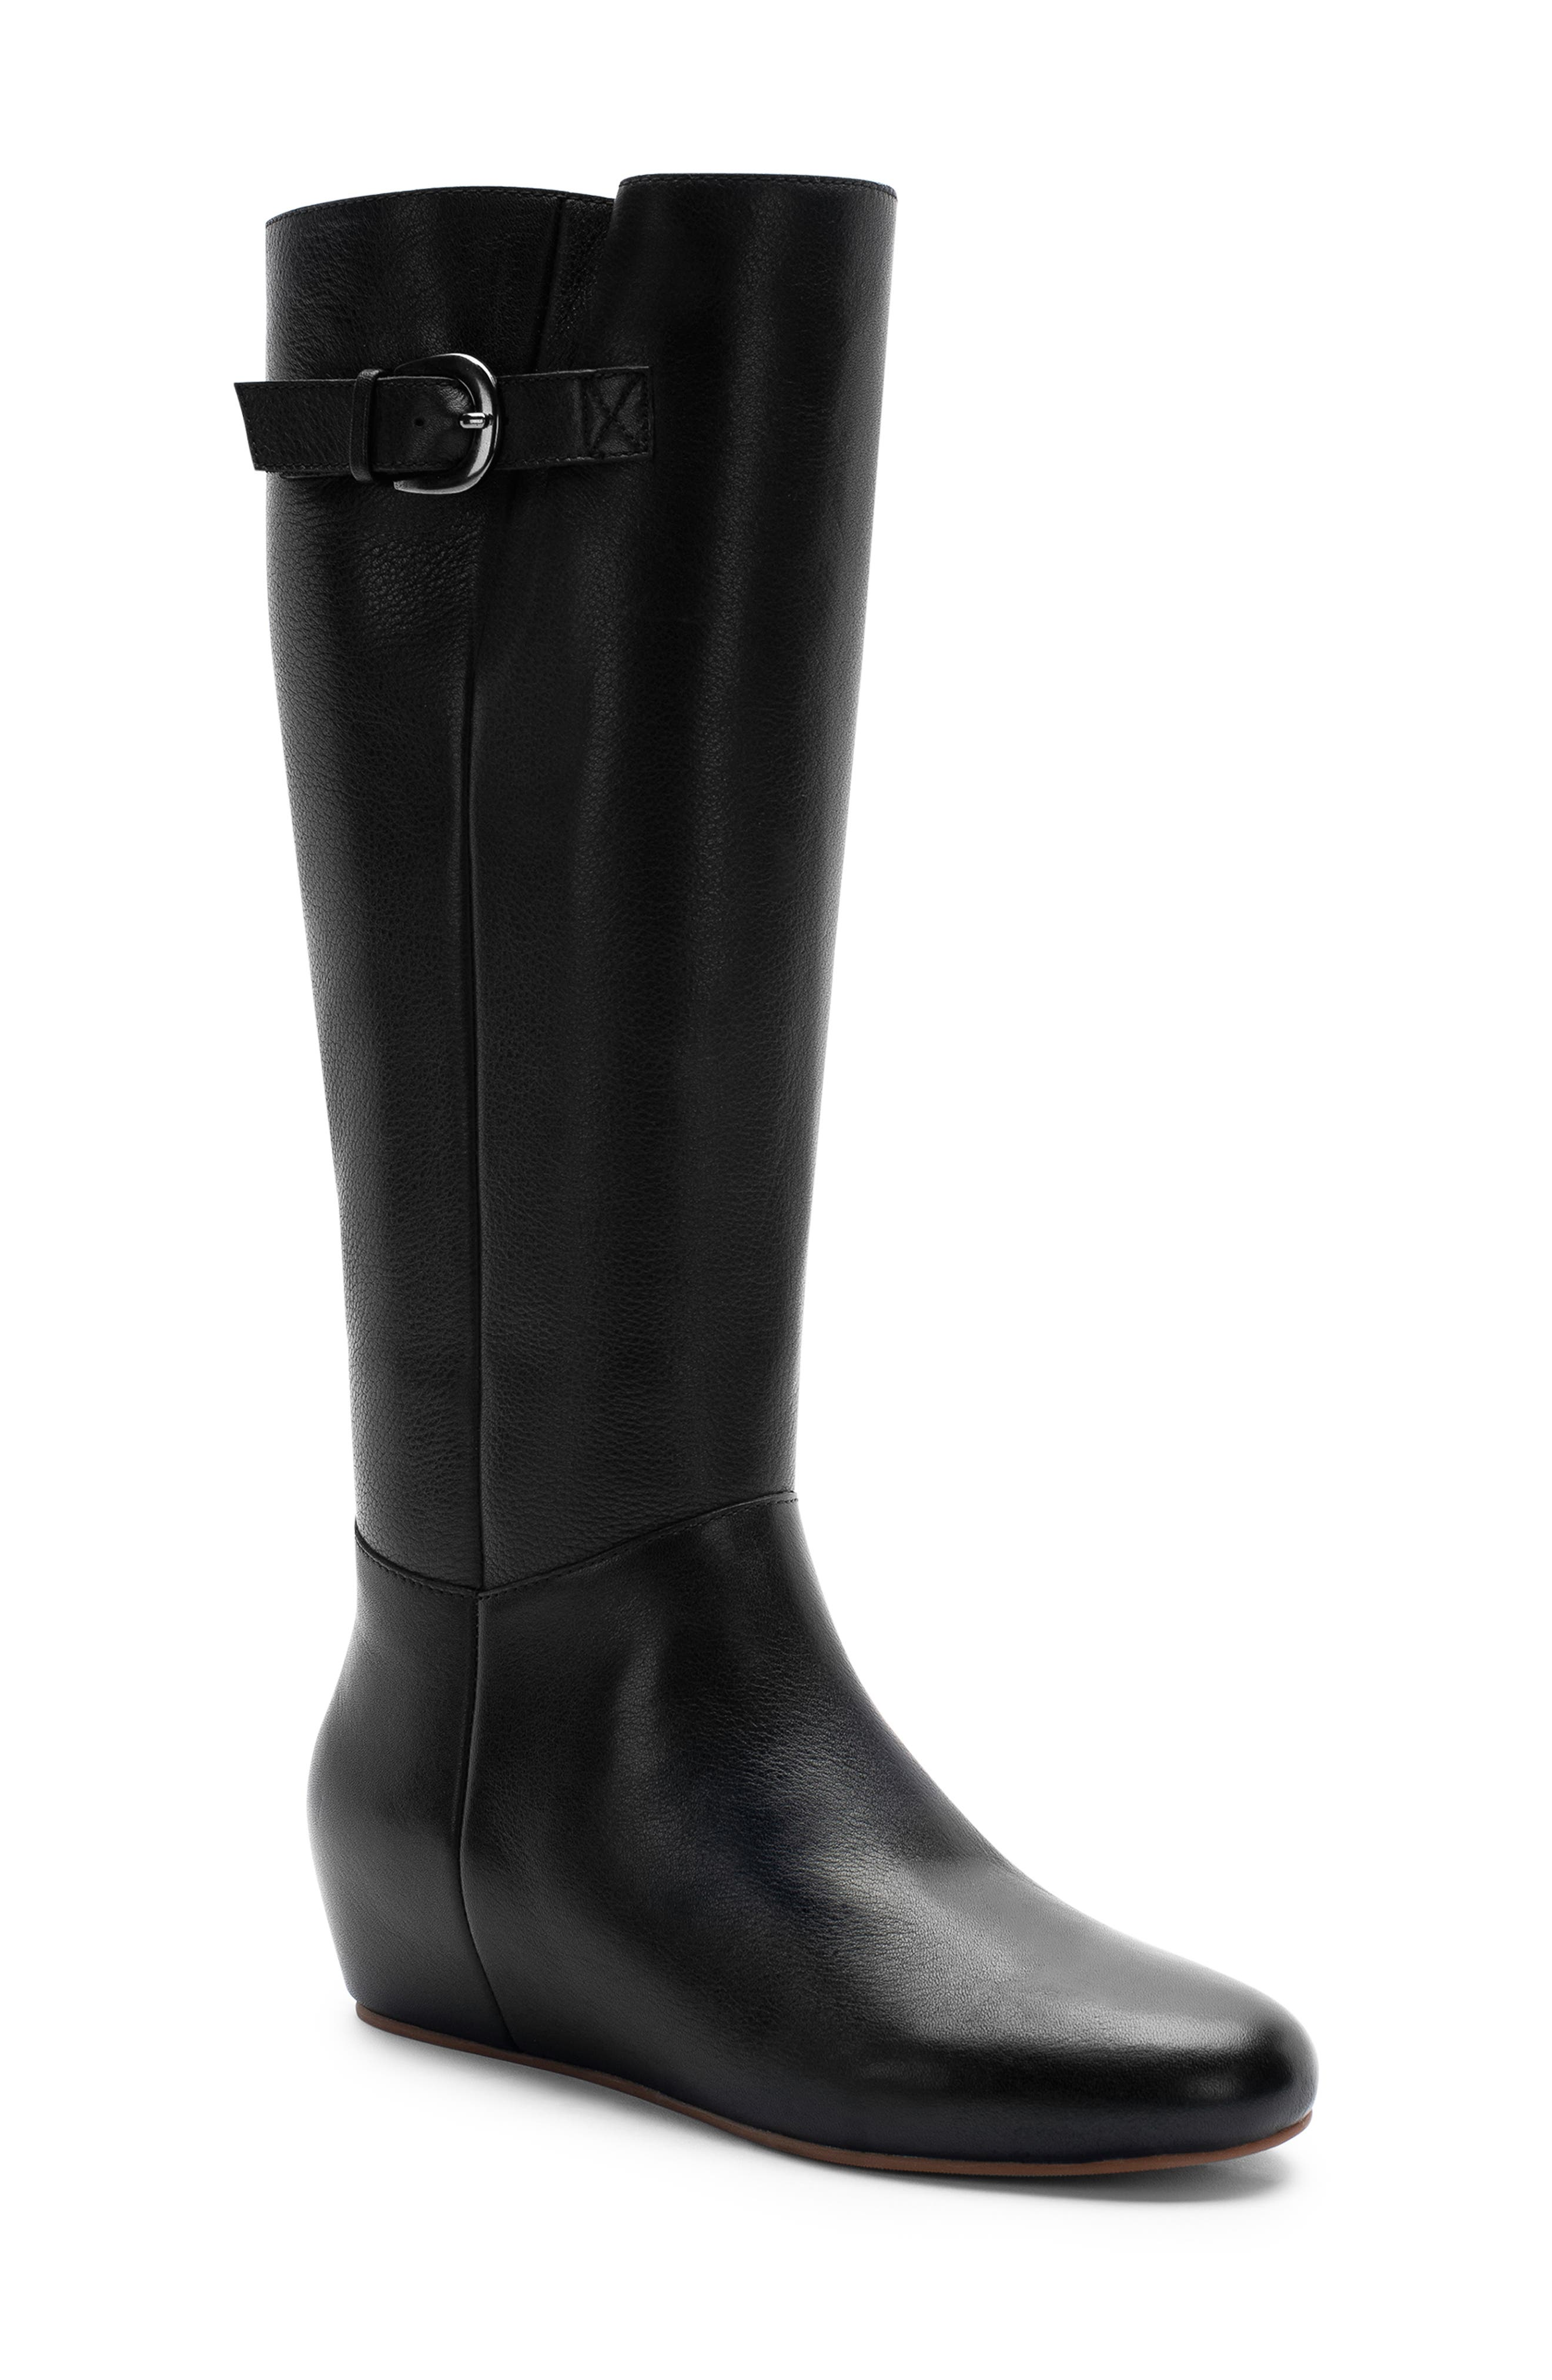 29f739c7dc4 Blondo Knee-High   Tall Boots for Women